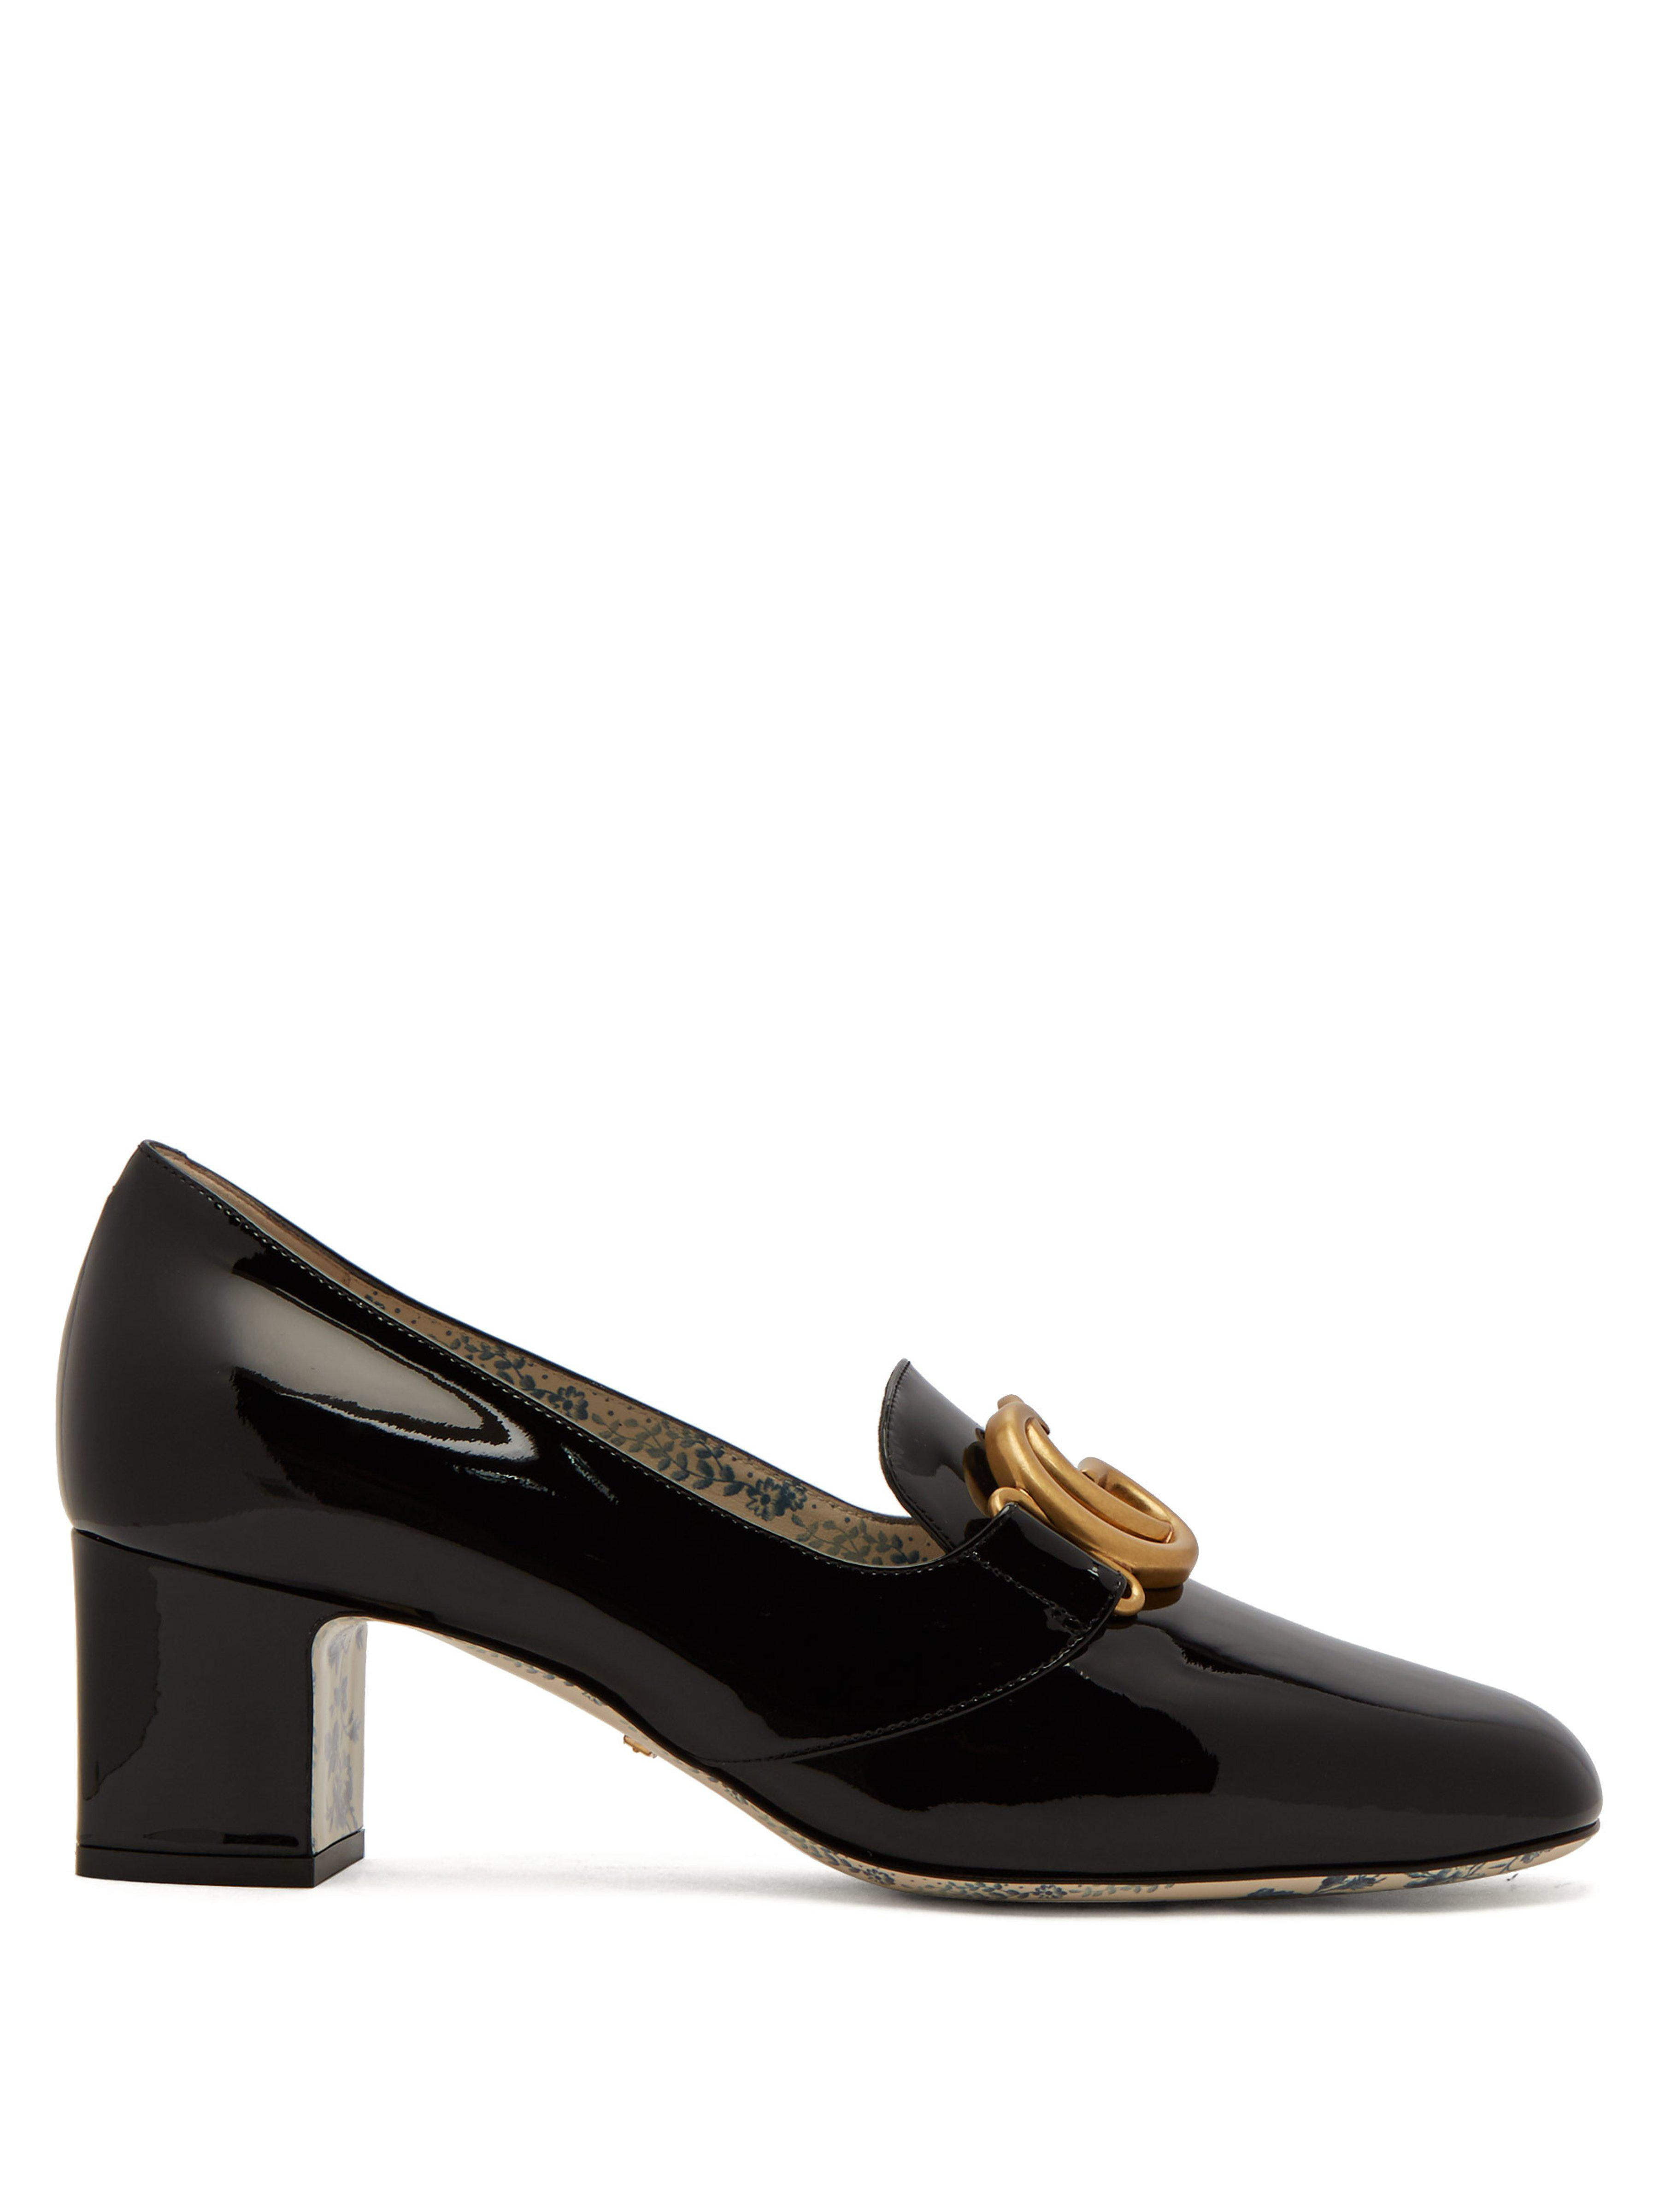 ebe6cd569068 Gucci Gg Marmont Patent Leather Block Heel Loafers in Black - Lyst